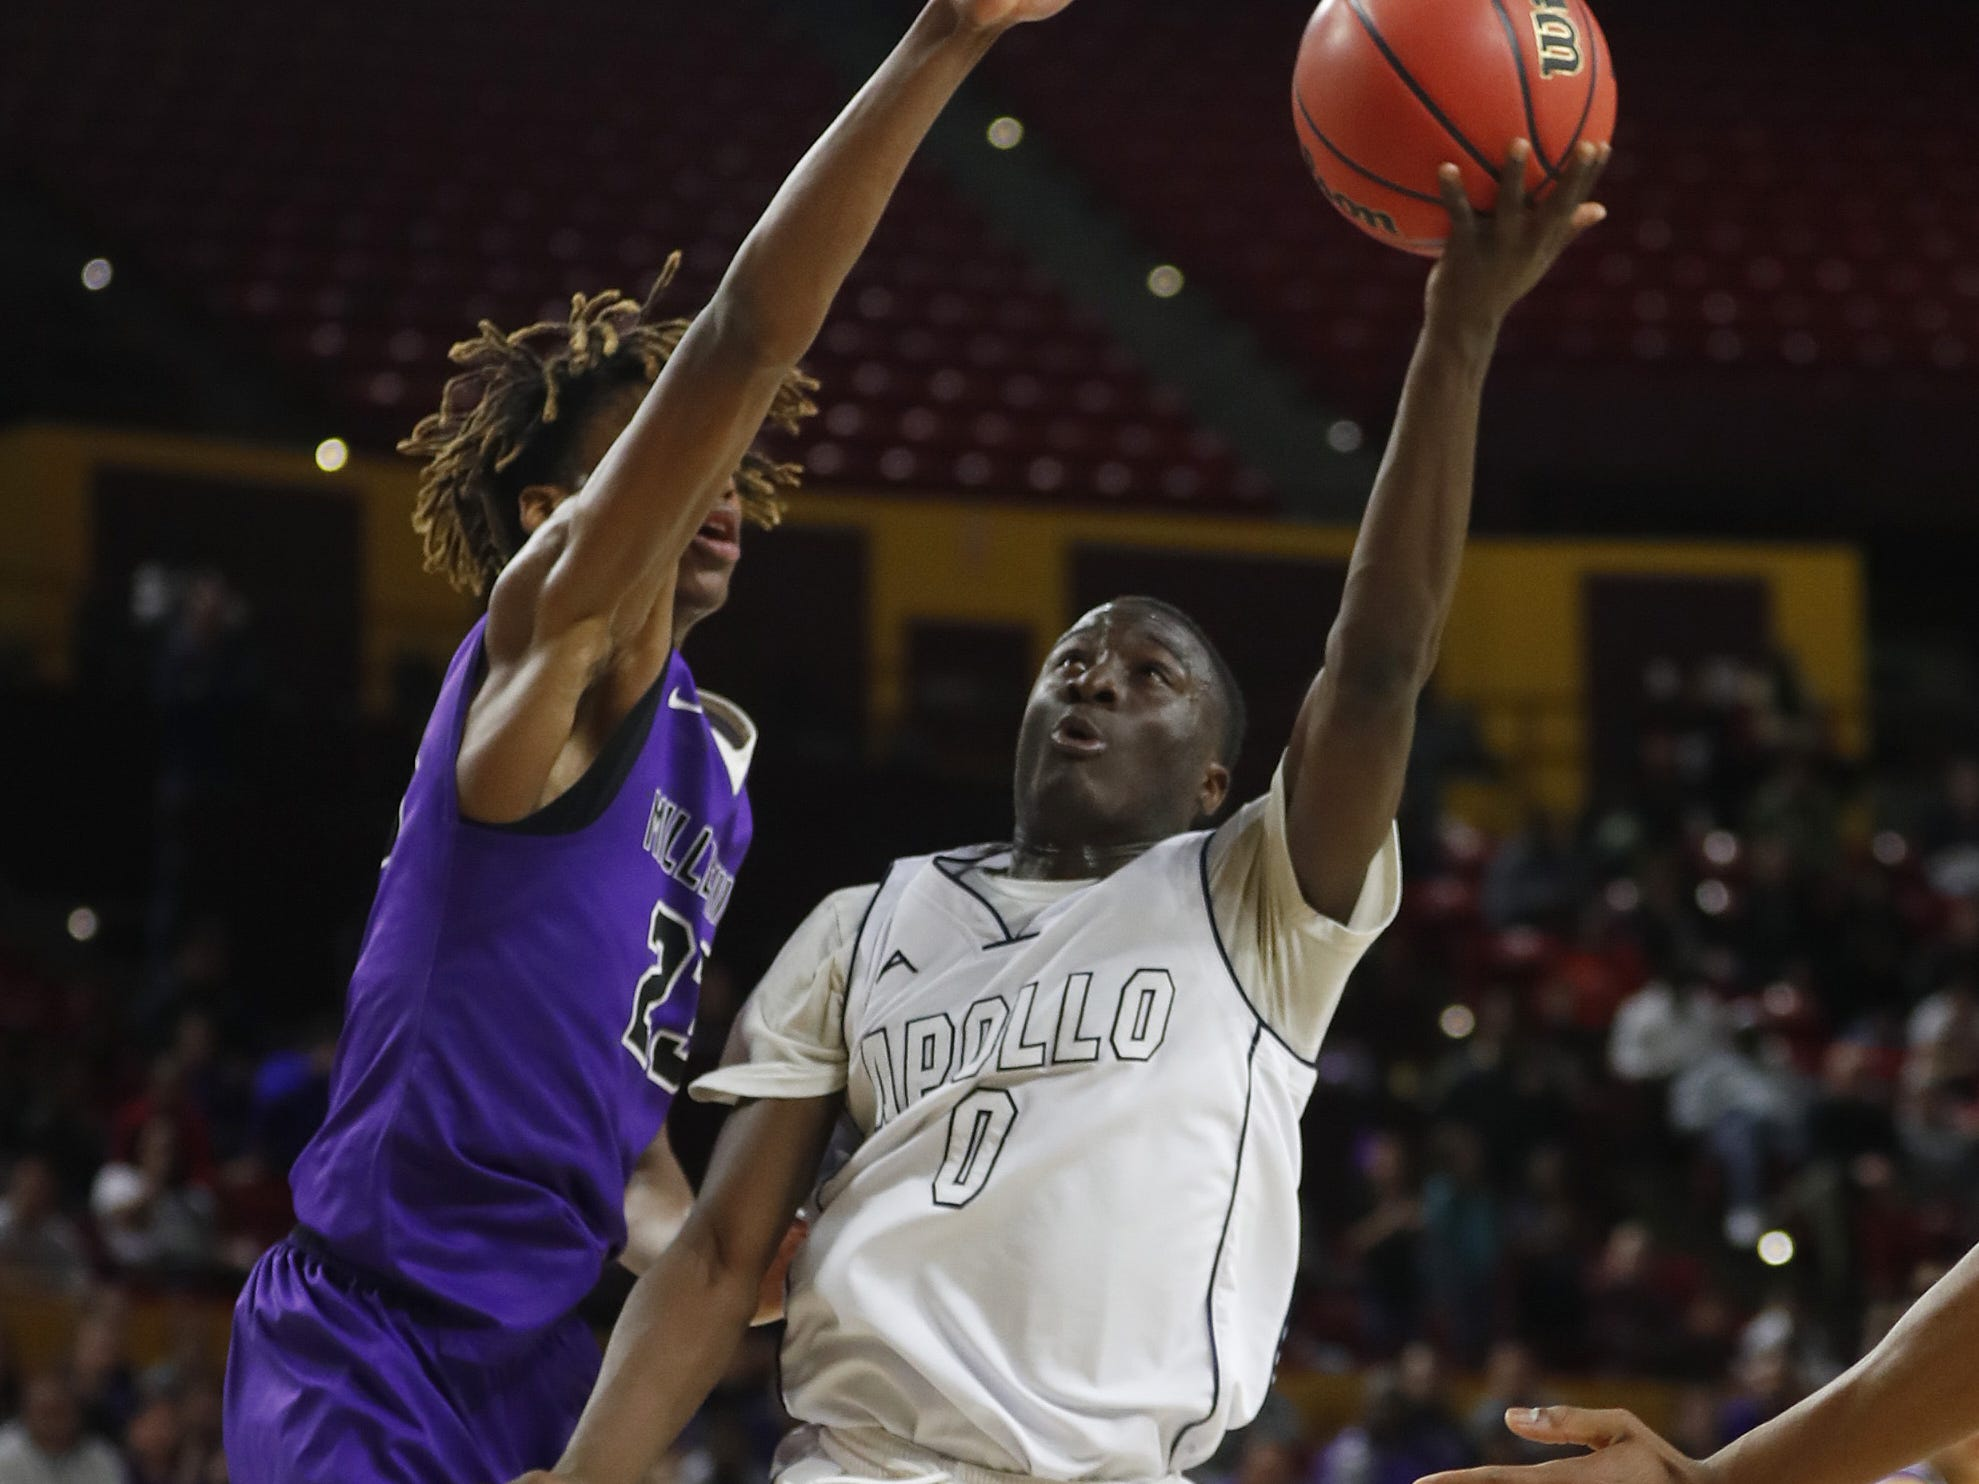 Millennium's DaRon Holmes (23) blocks a layup from Apollo's Gabriel Nyawumenya (0) during the 5A boys basketball state semifinal game at Wells Fargo Arena in Tempe, Ariz. on February 18, 2019.